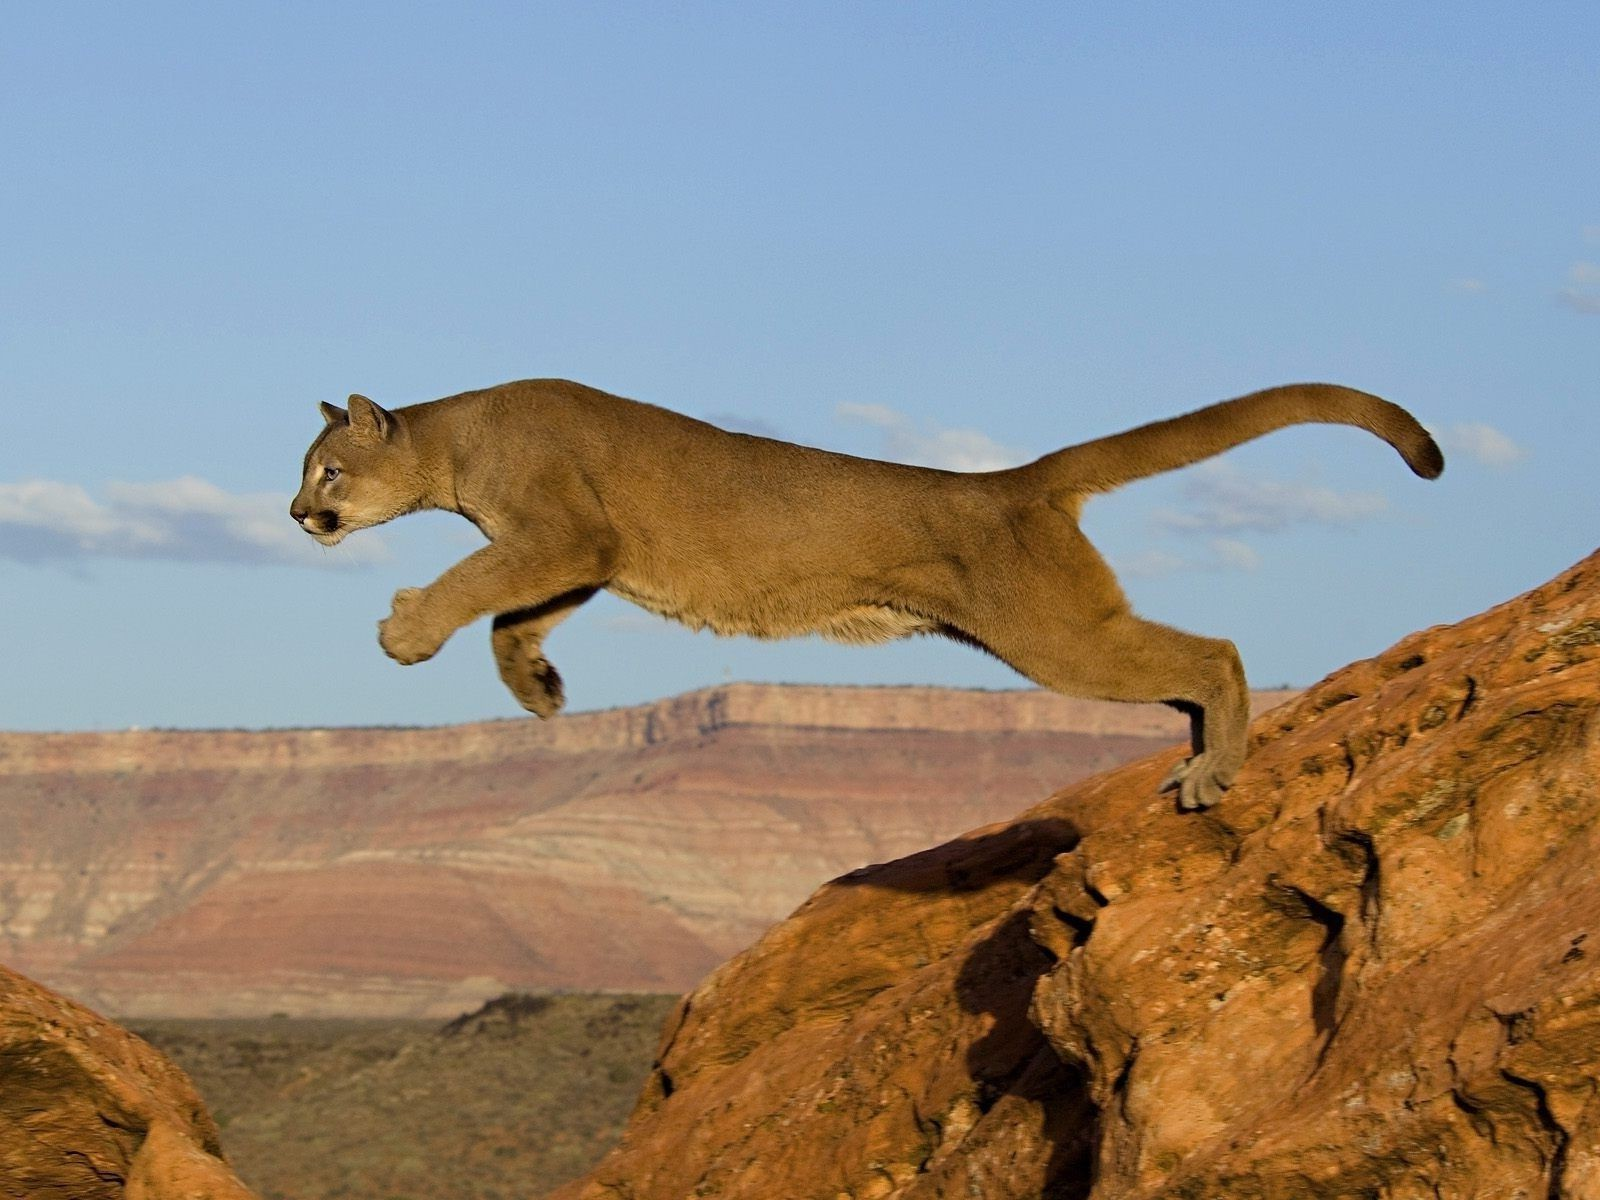 the jumping Puma cat predator Africa rocks